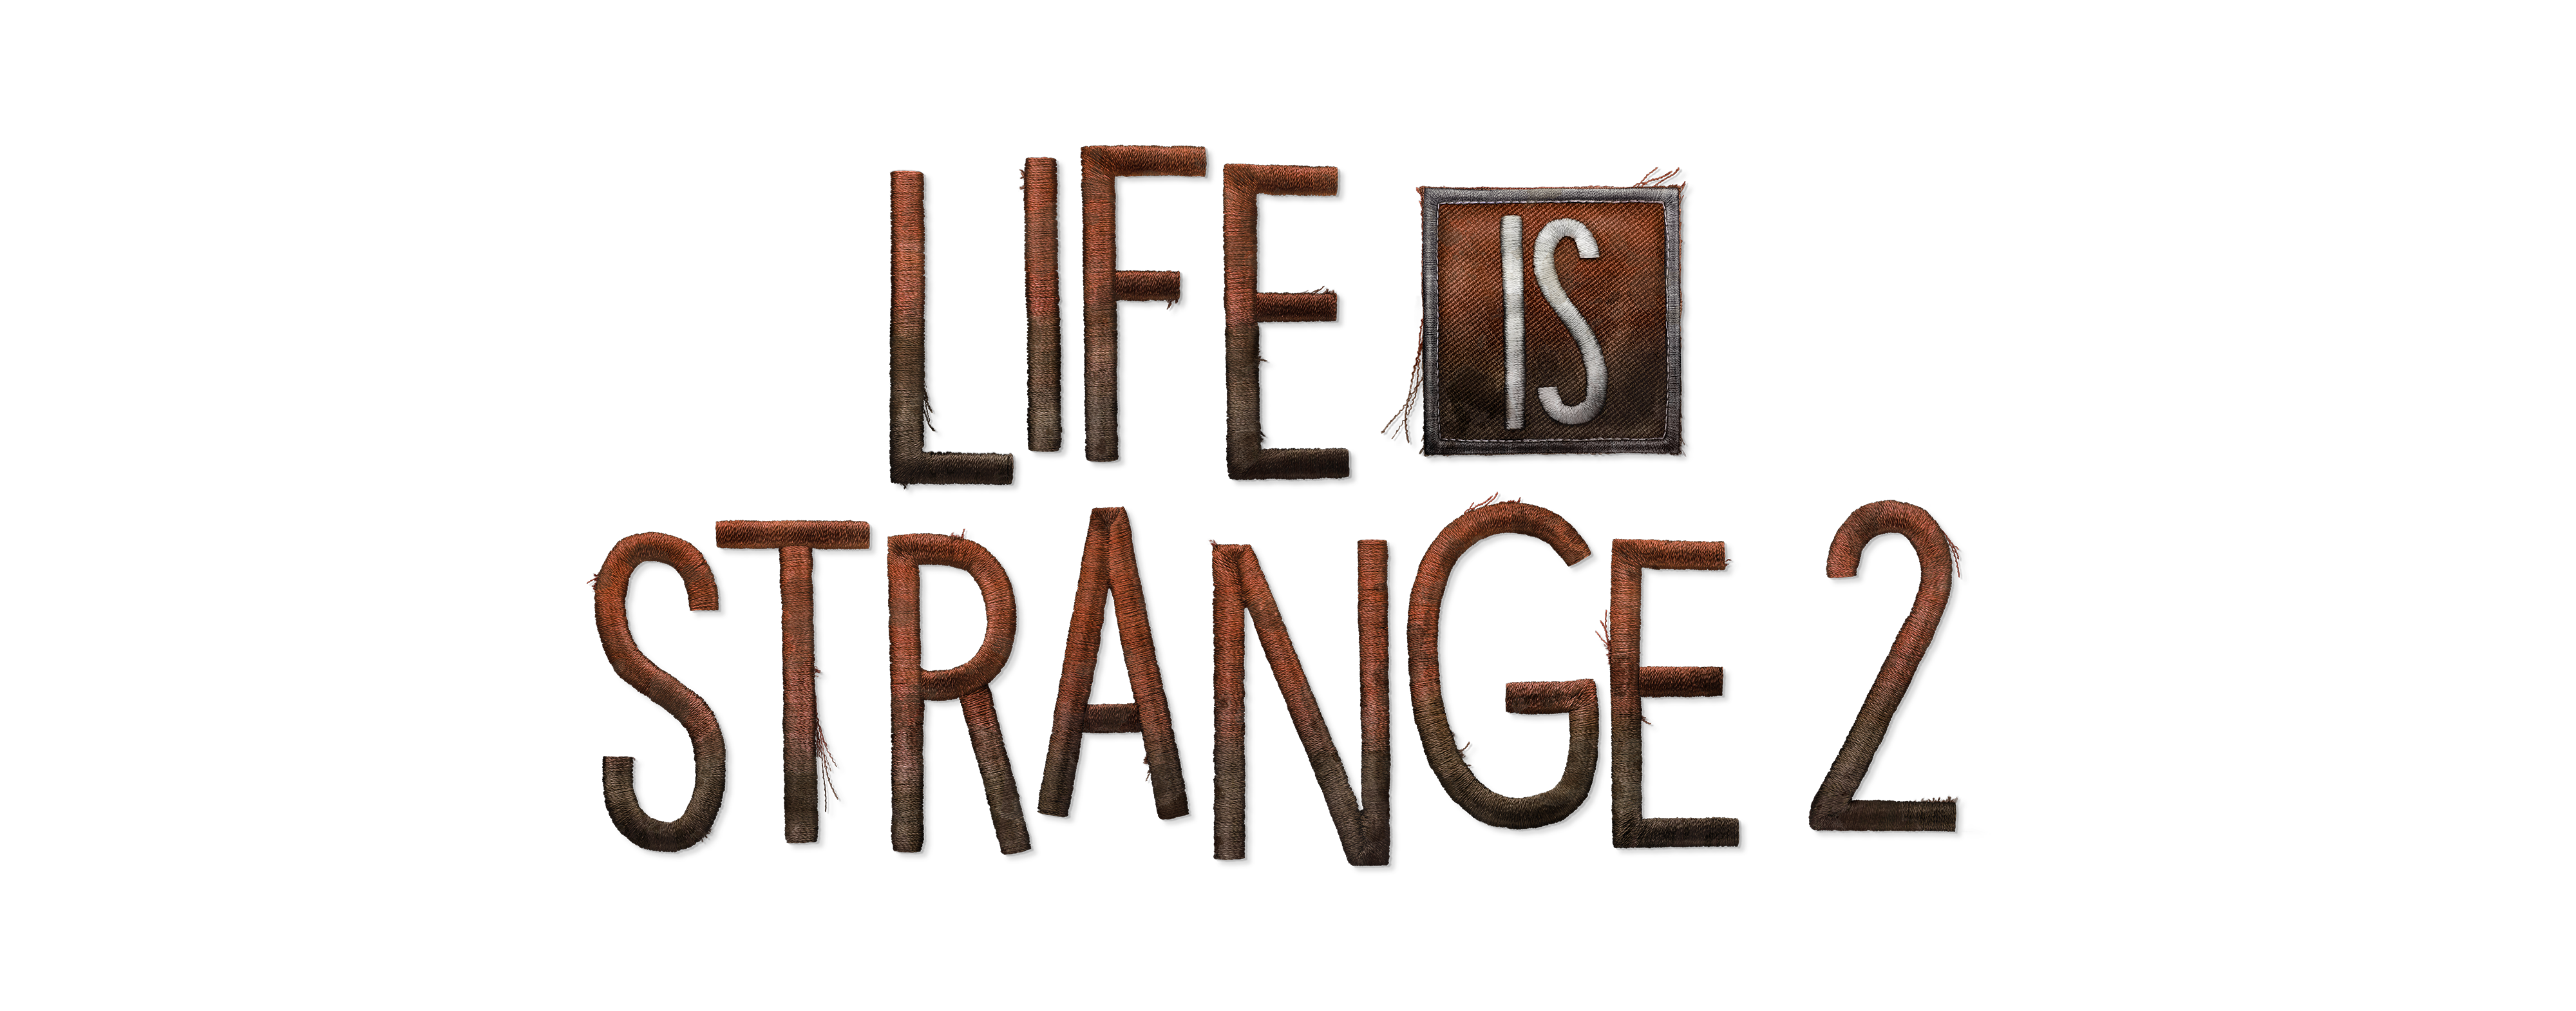 Life-is-Strange-2-full-game-cracked